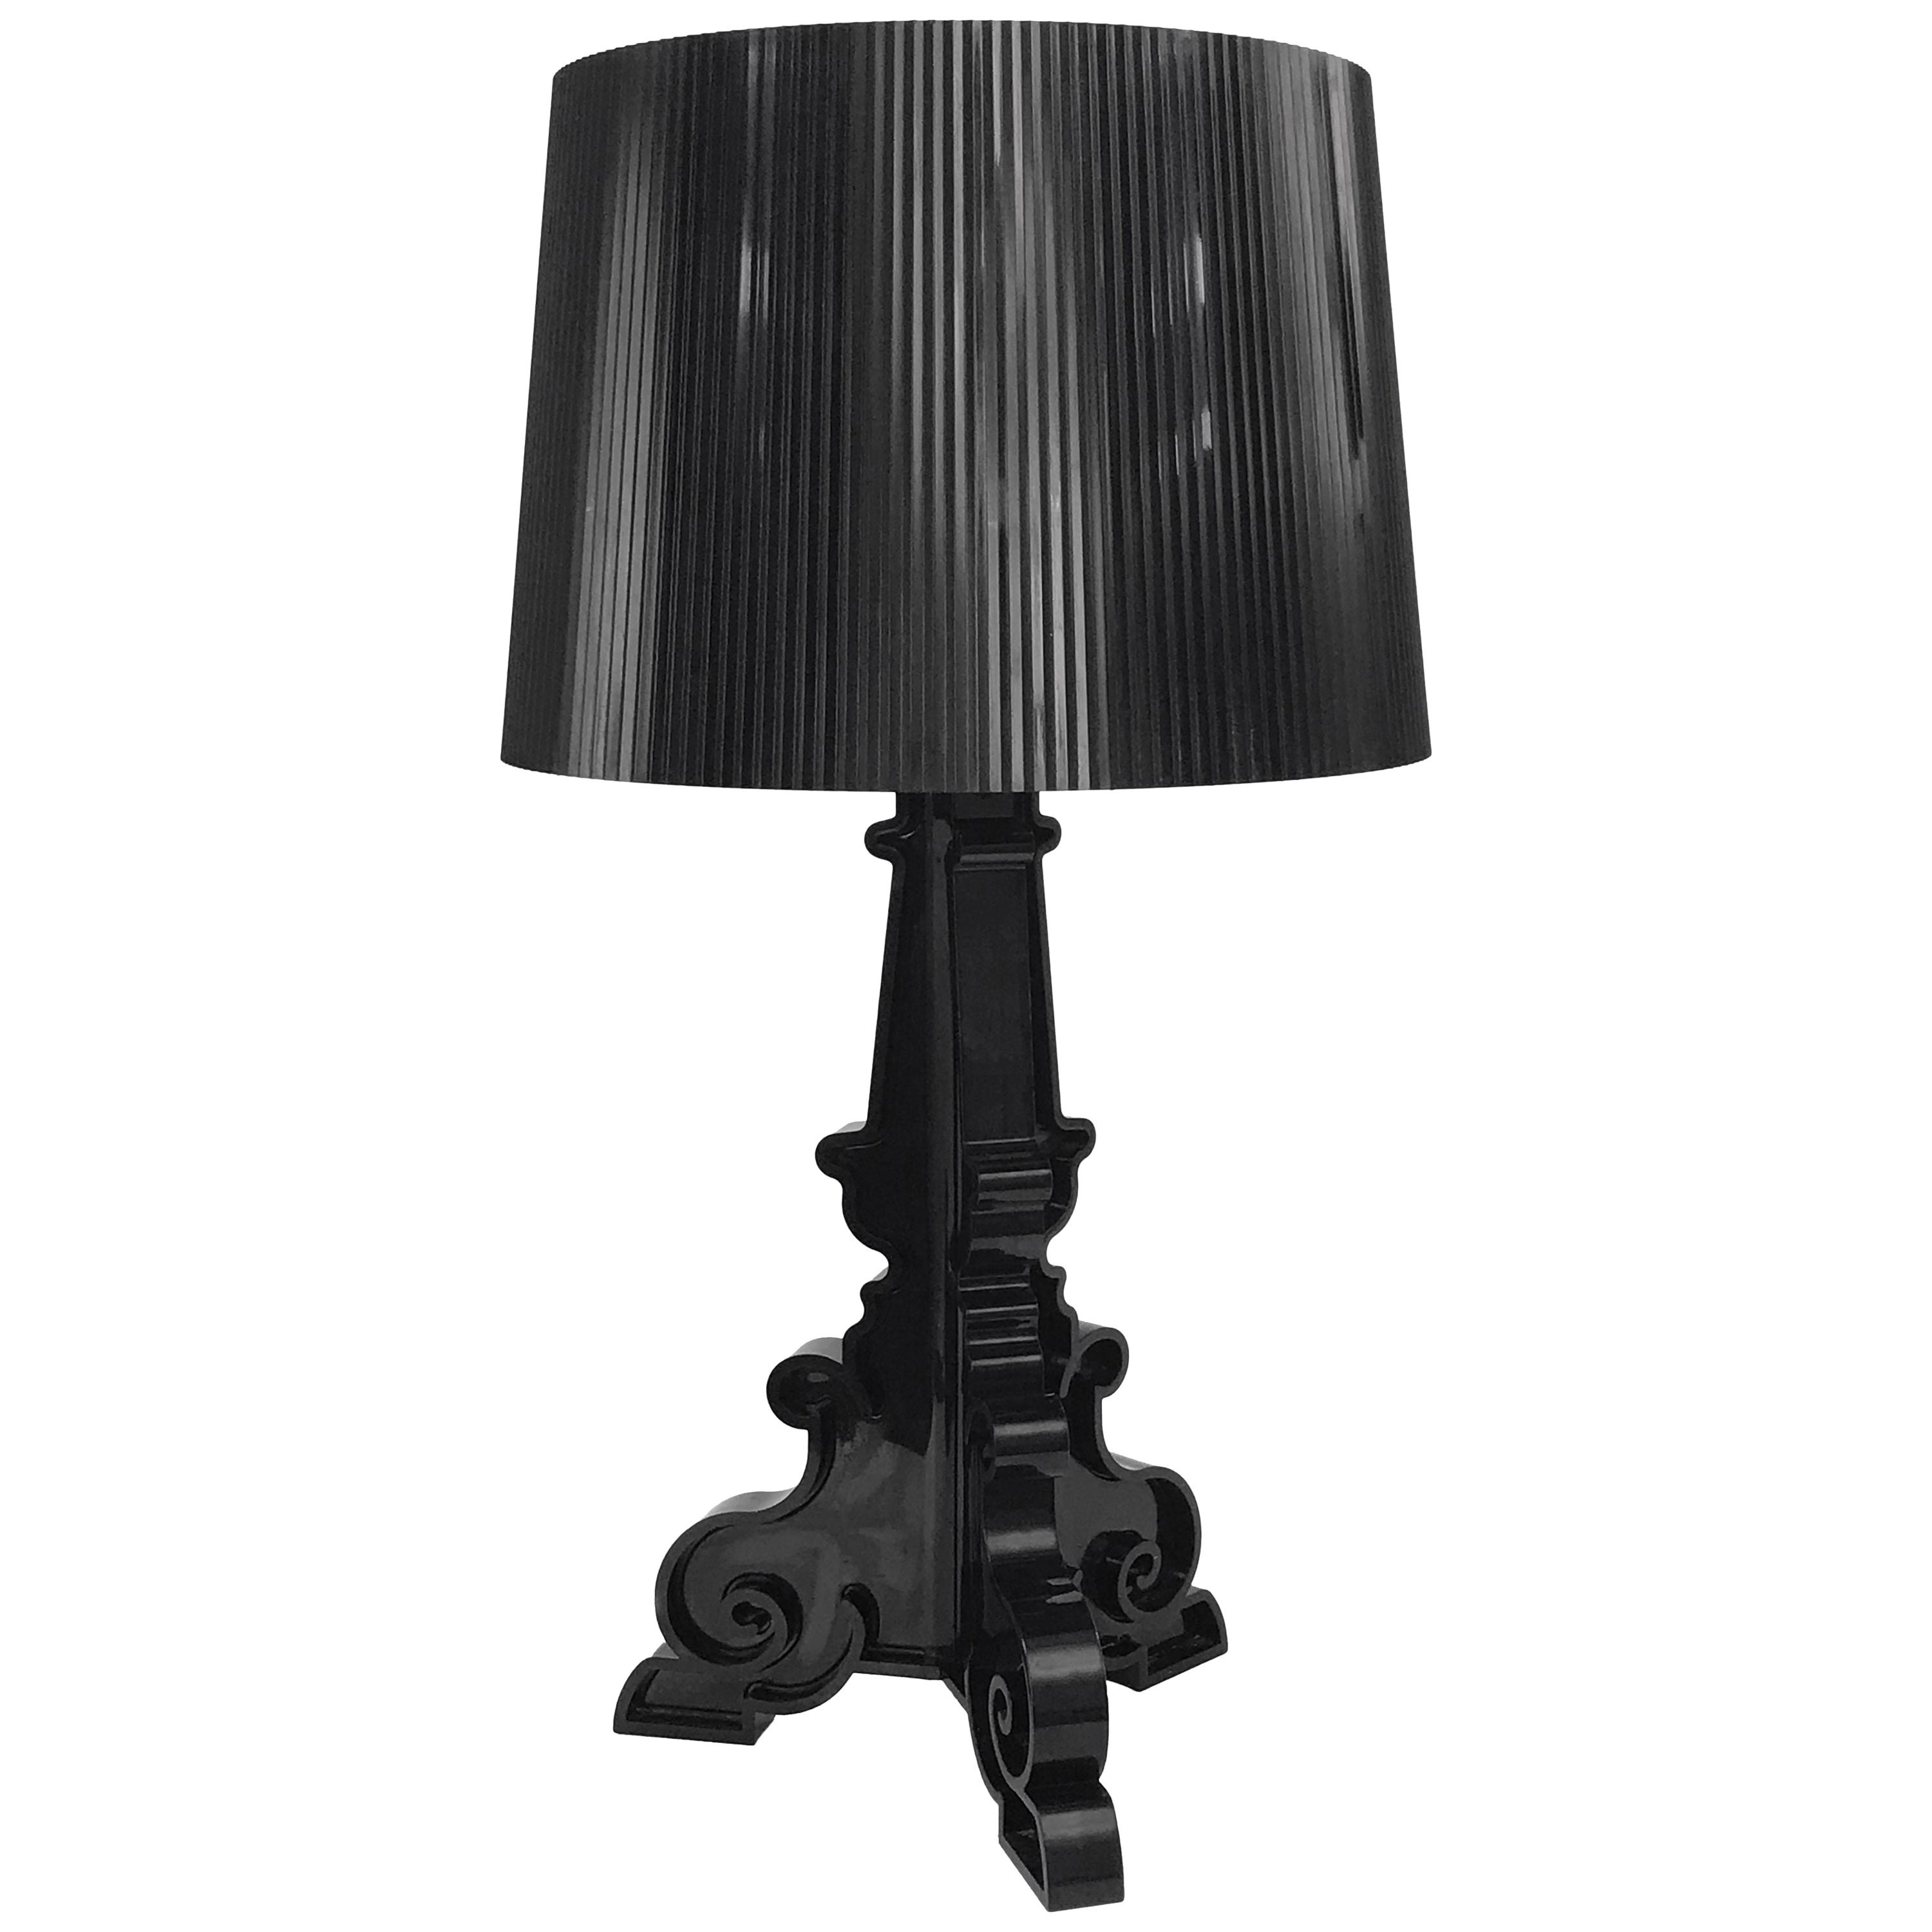 Table Lamp Kartell Bourgie Black by Ferruccio Laviani